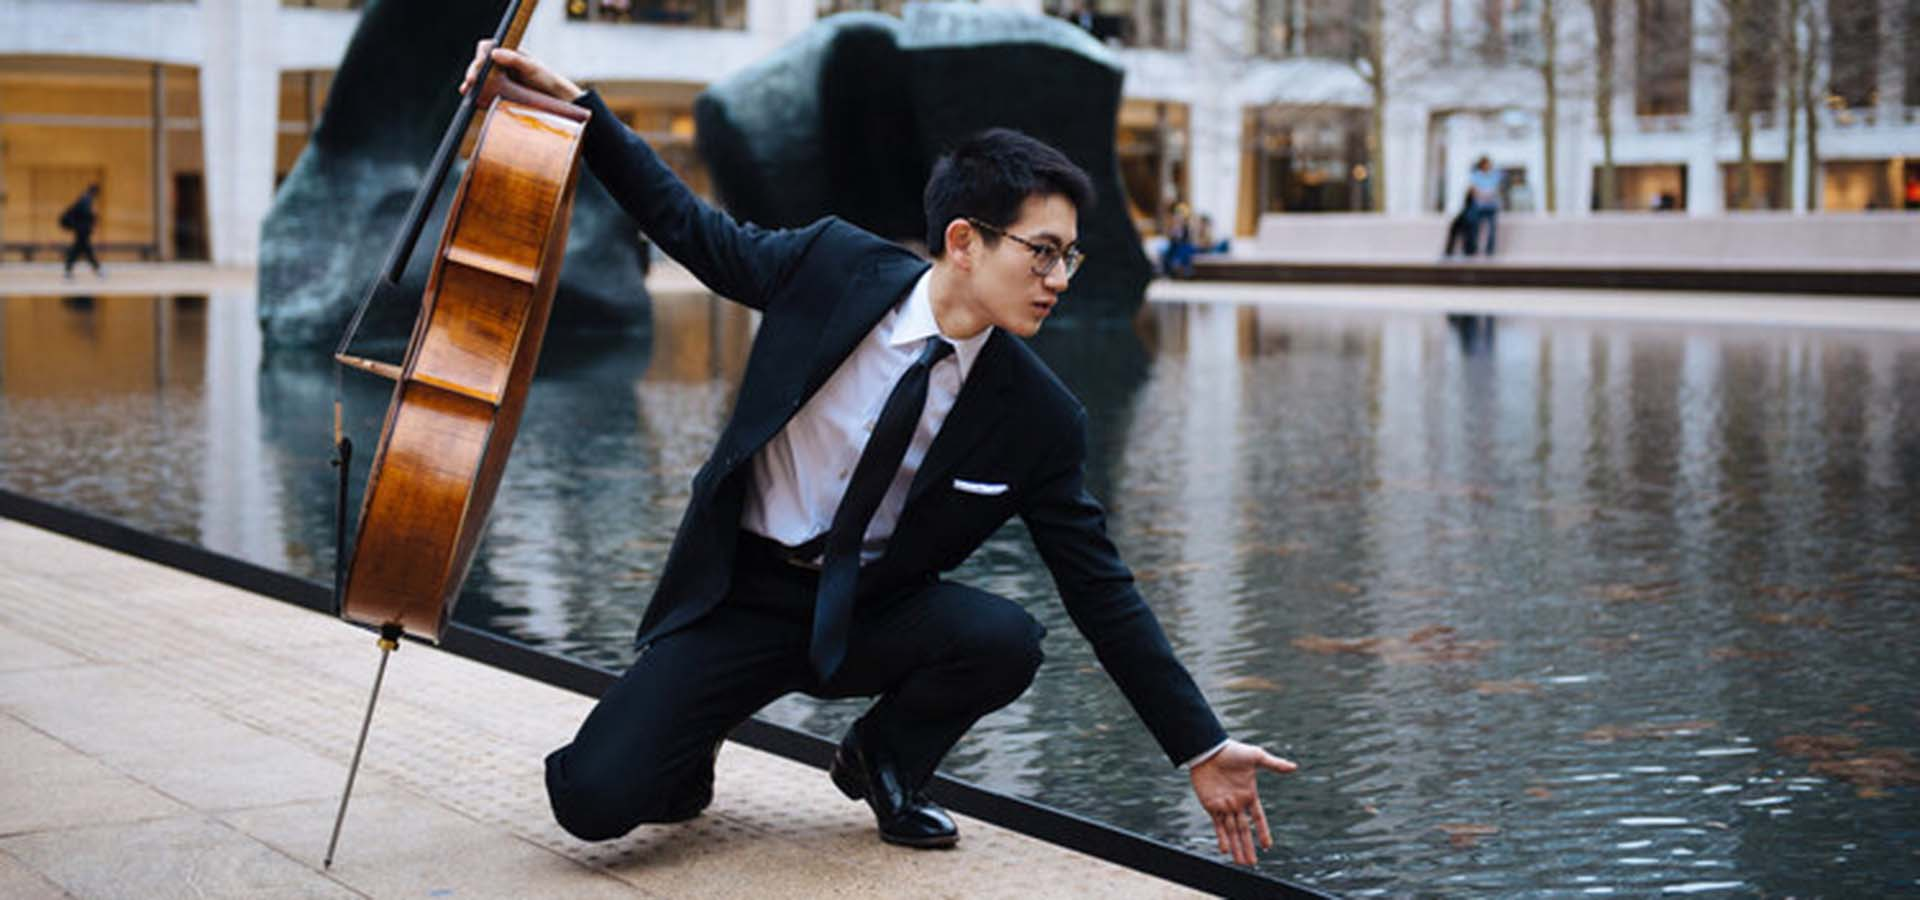 Cello playing touching a pool of water